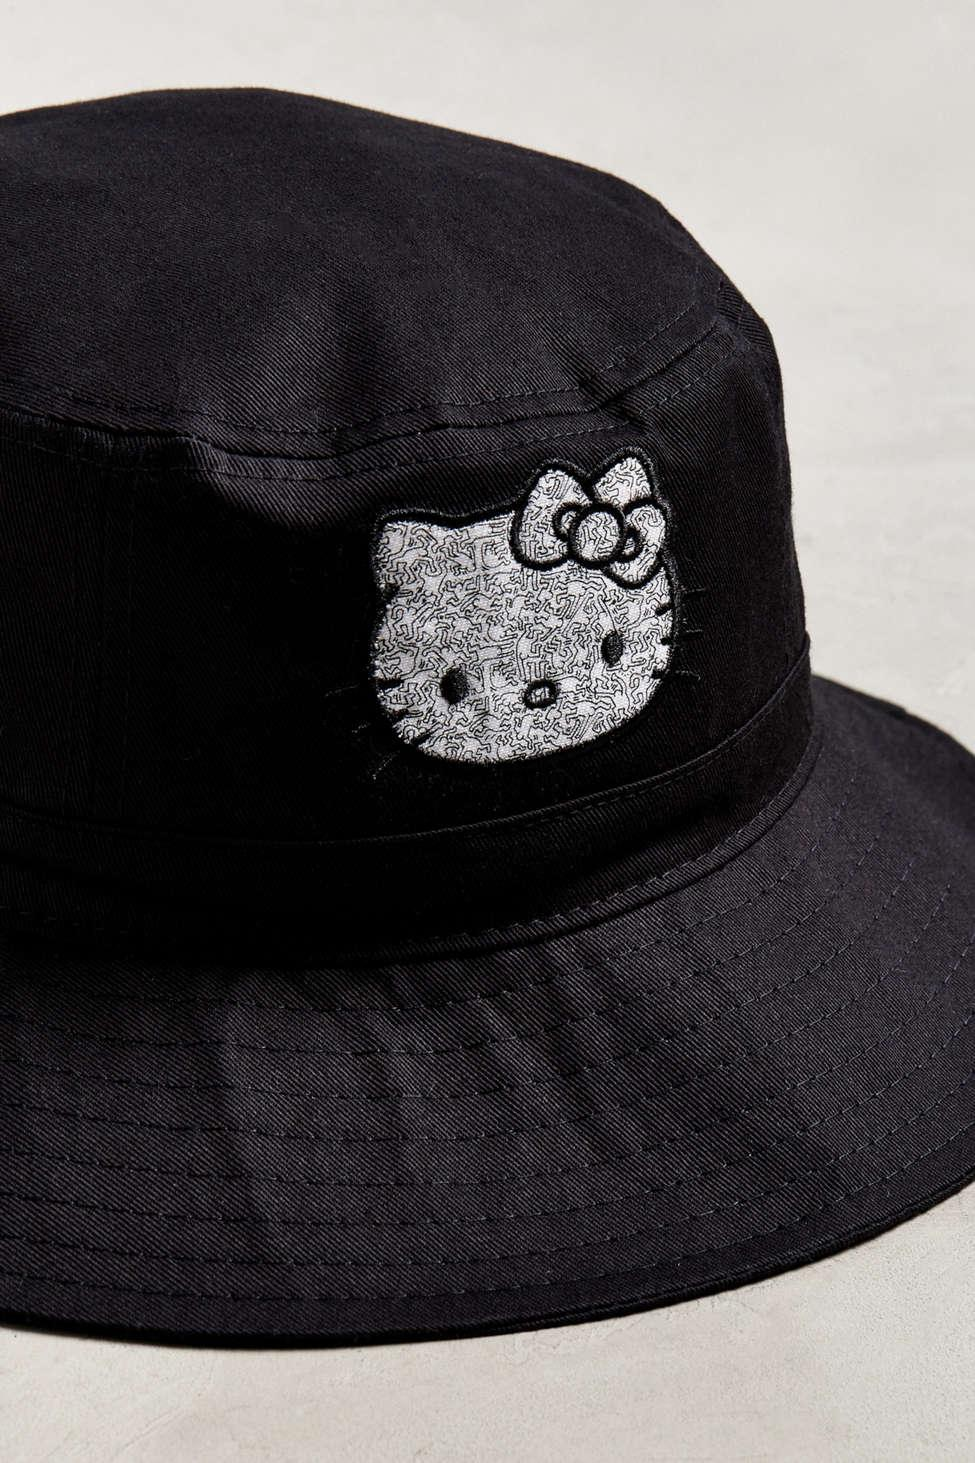 990494a6c Urban Outfitters Hello Kitty X Keith Haring Bucket Hat in Black for ...